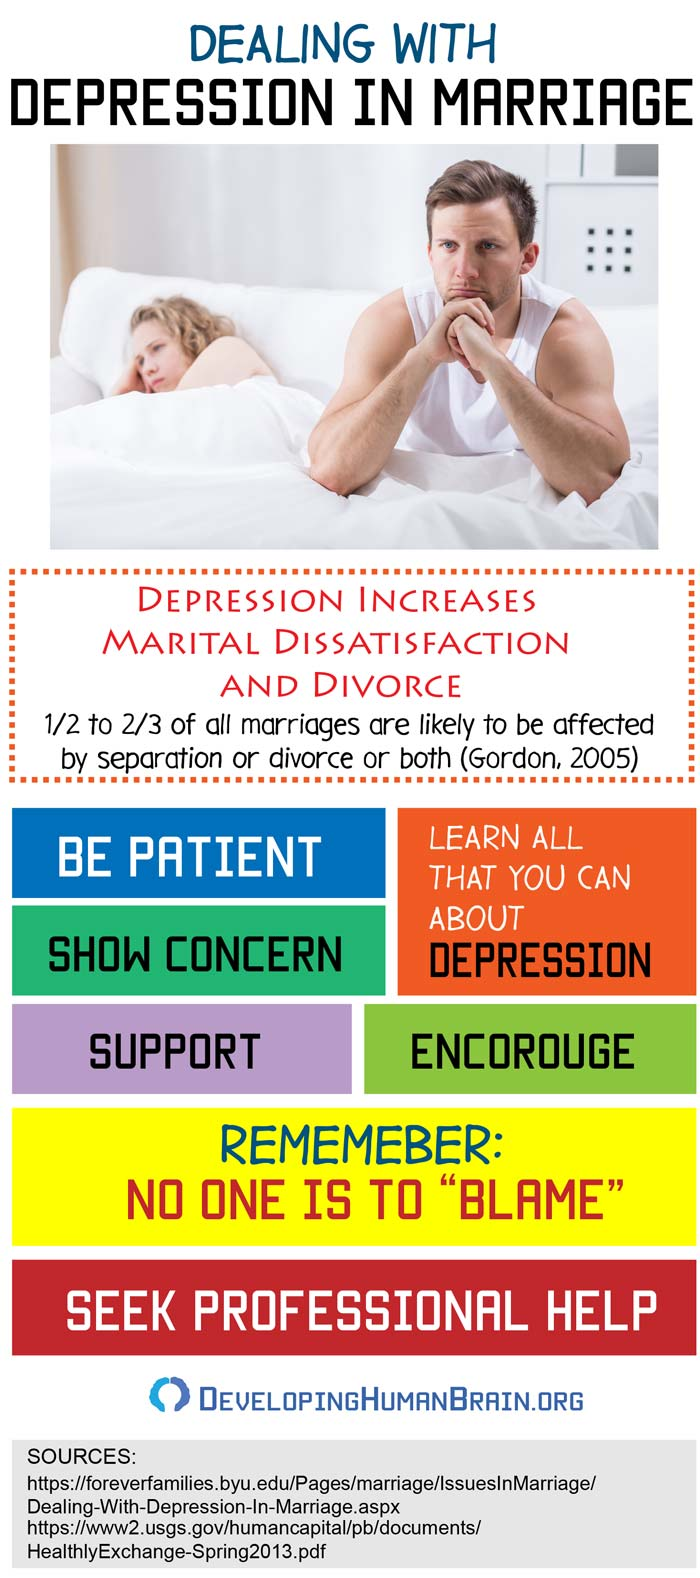 how to deal with depression in marriage infographic